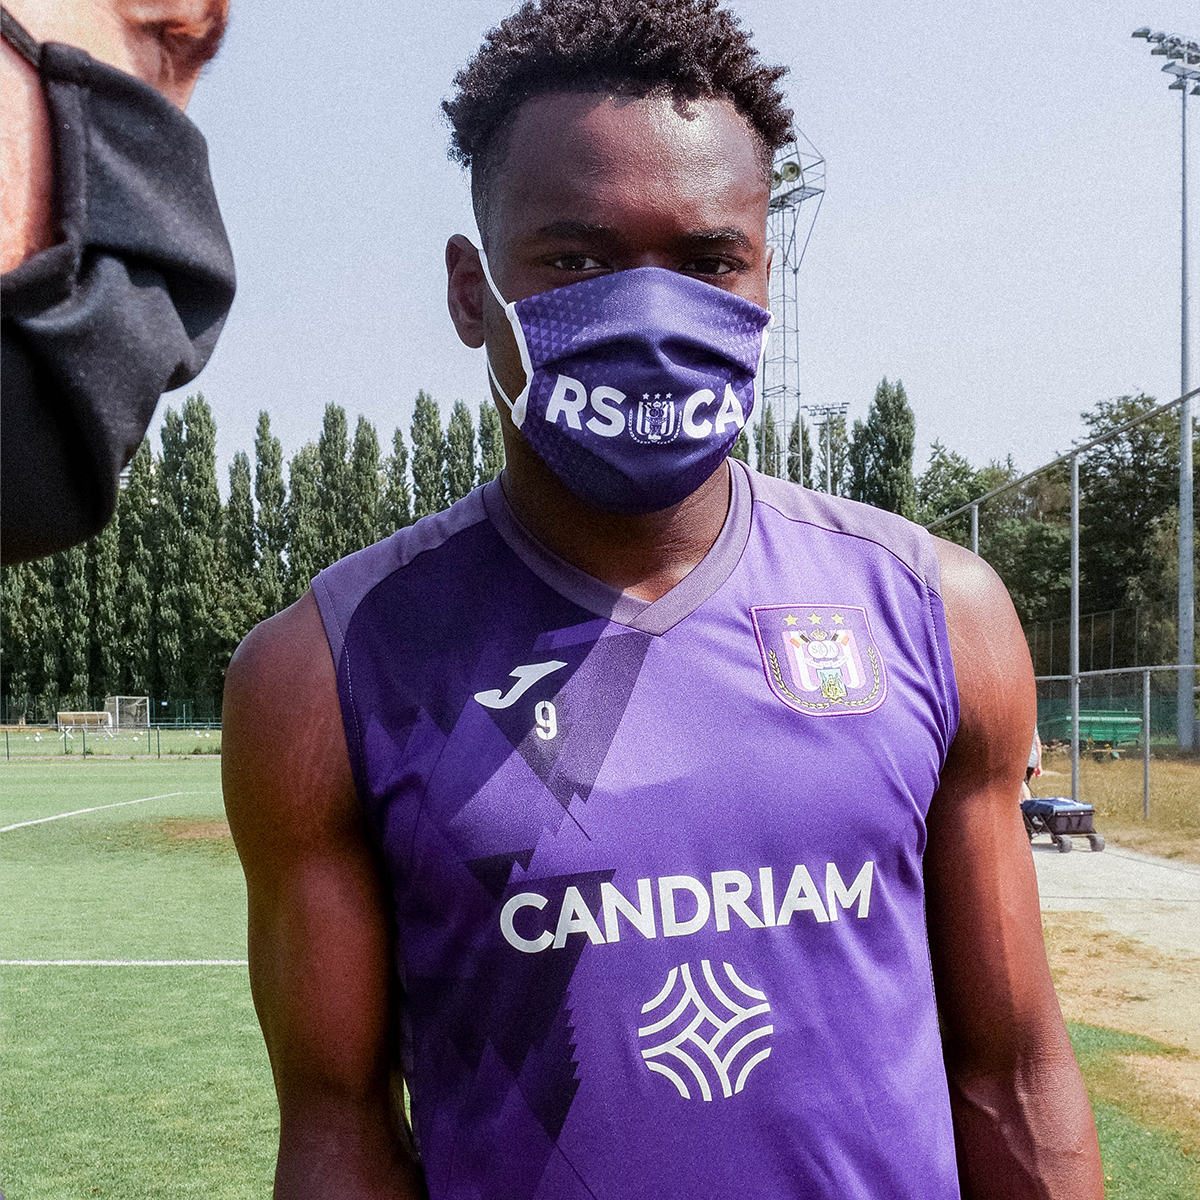 RSCA Face Masks